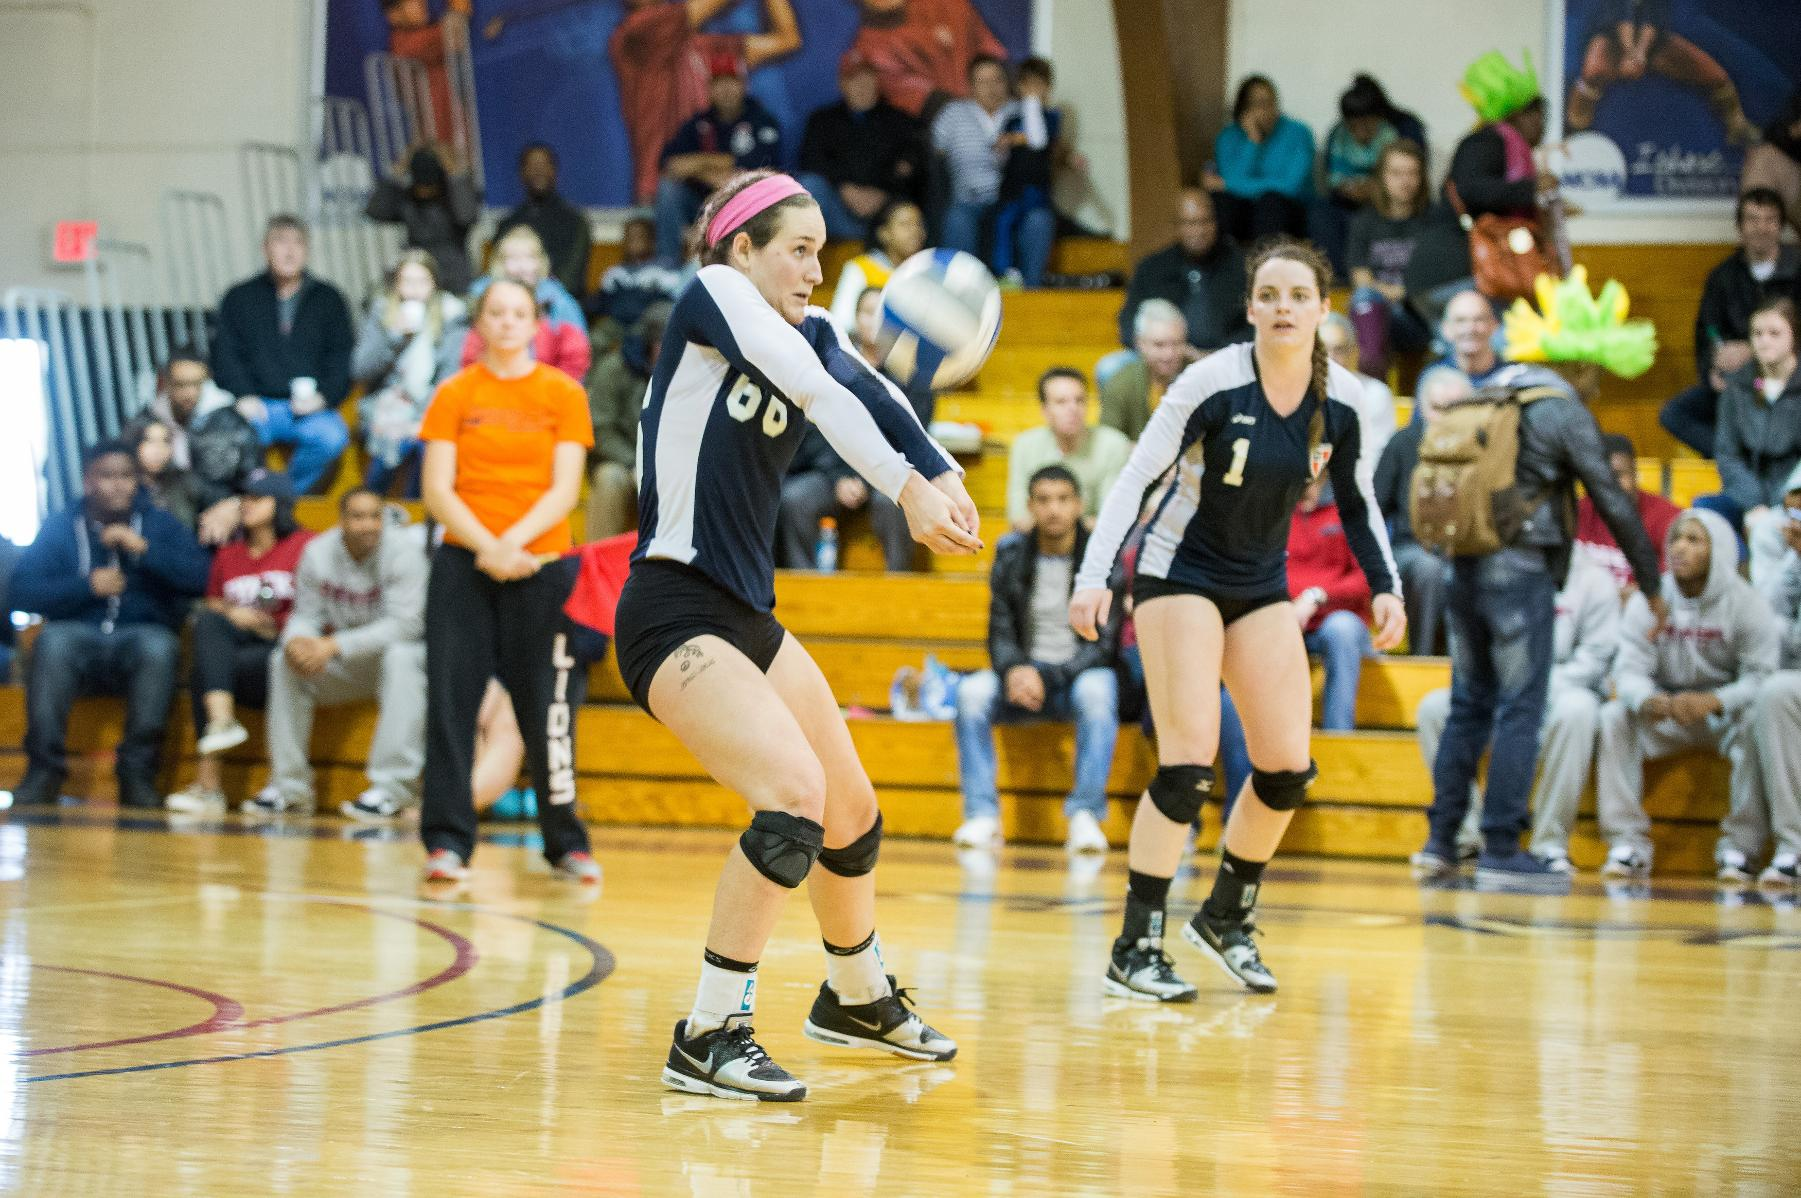 Women's Volleyball Falls to Southern Connecticut State, 0-3